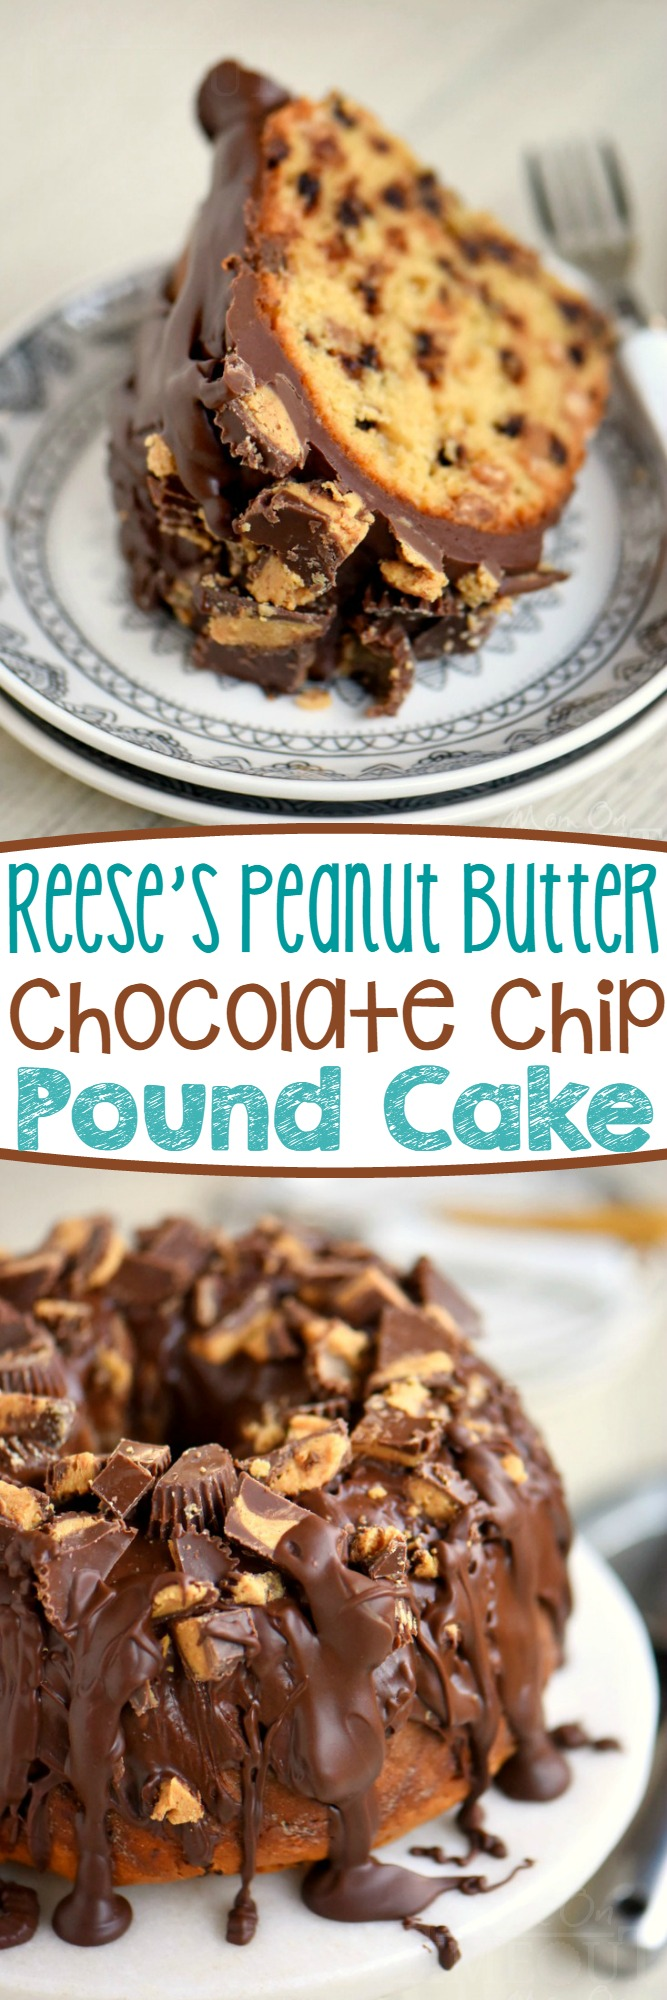 outrageously decadent Reese's Peanut Butter Chocolate Chip Pound Cake ...